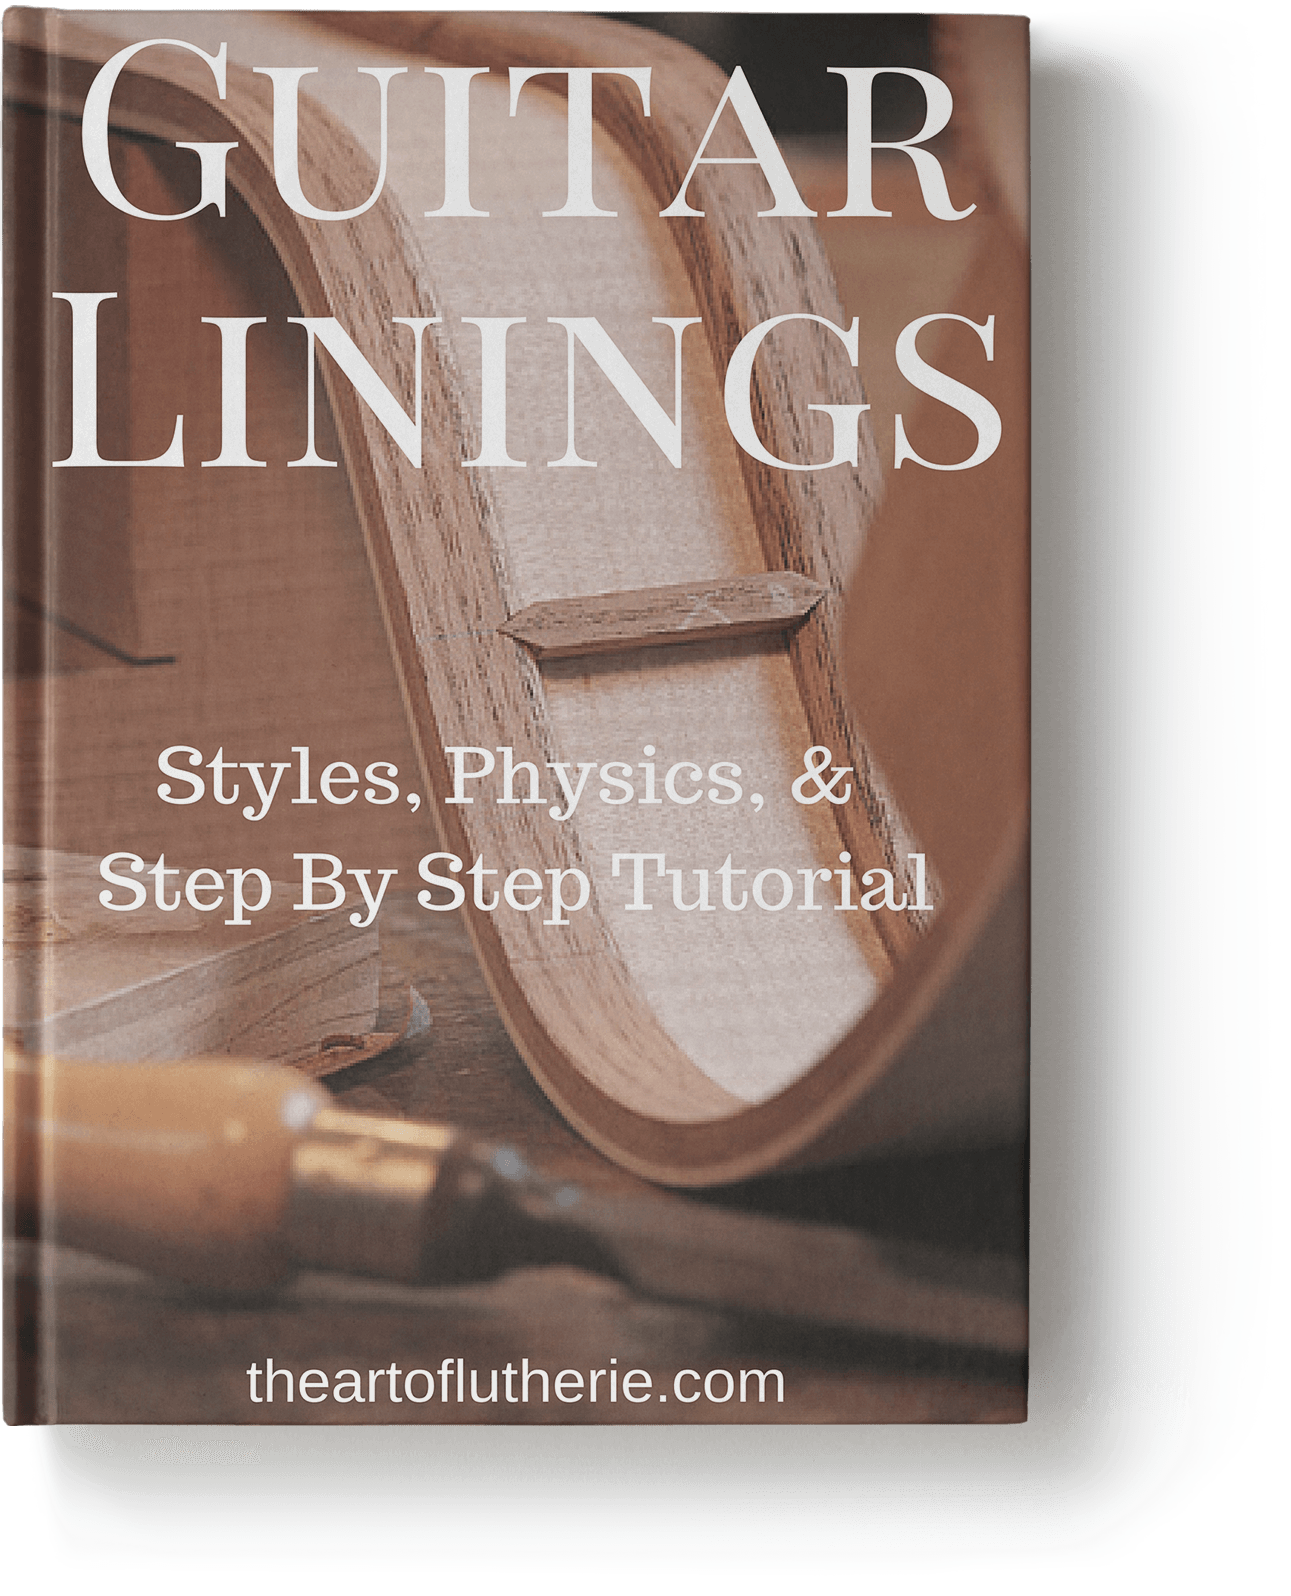 Guitar Linings - Book Cover